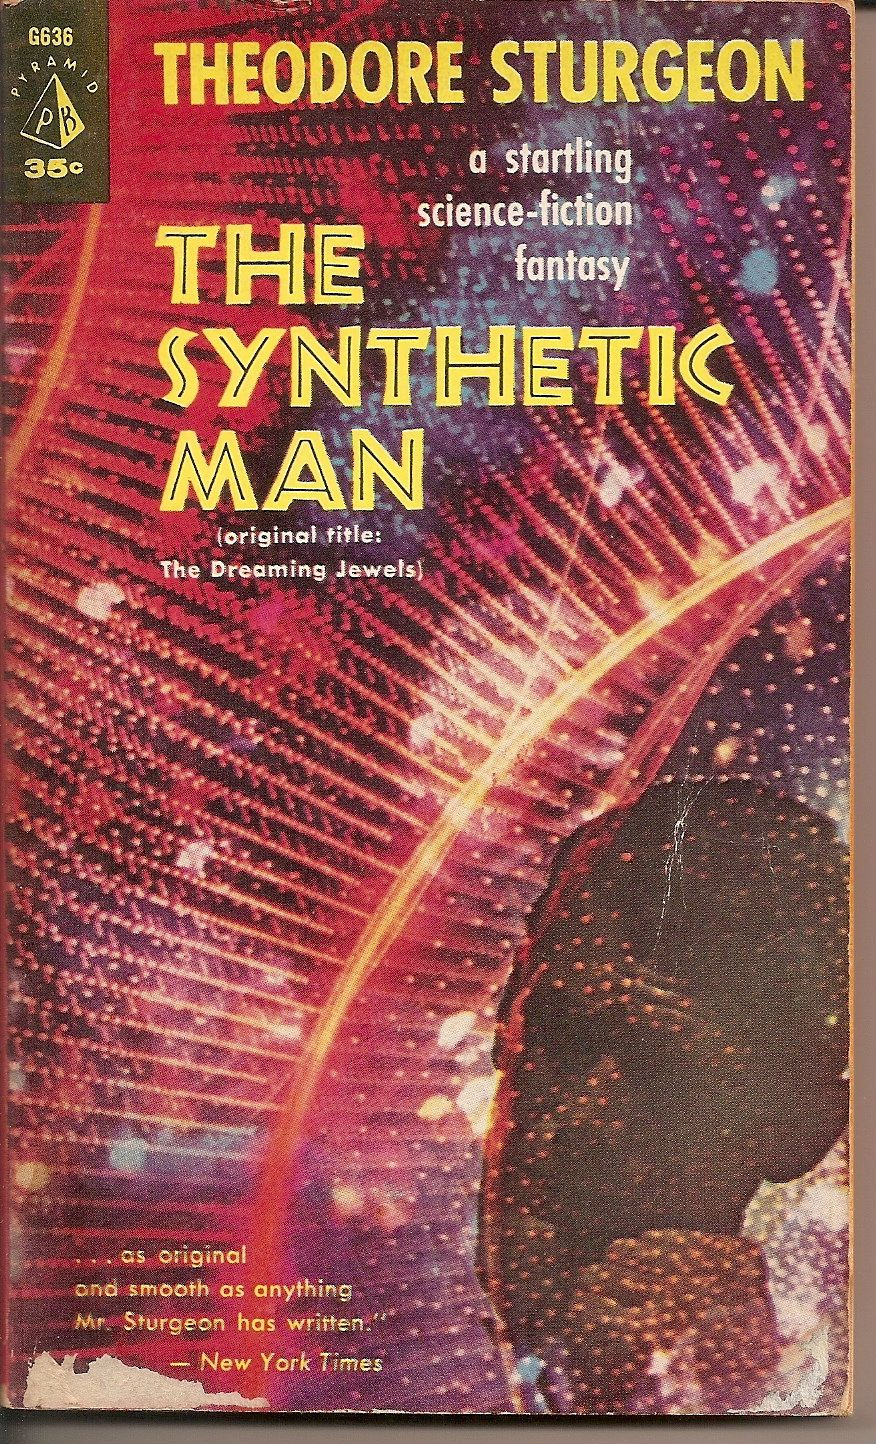 Synthetic Man Theodore Sturgeon Pulp Fiction Book Classic Sci Fi Books Science Fiction